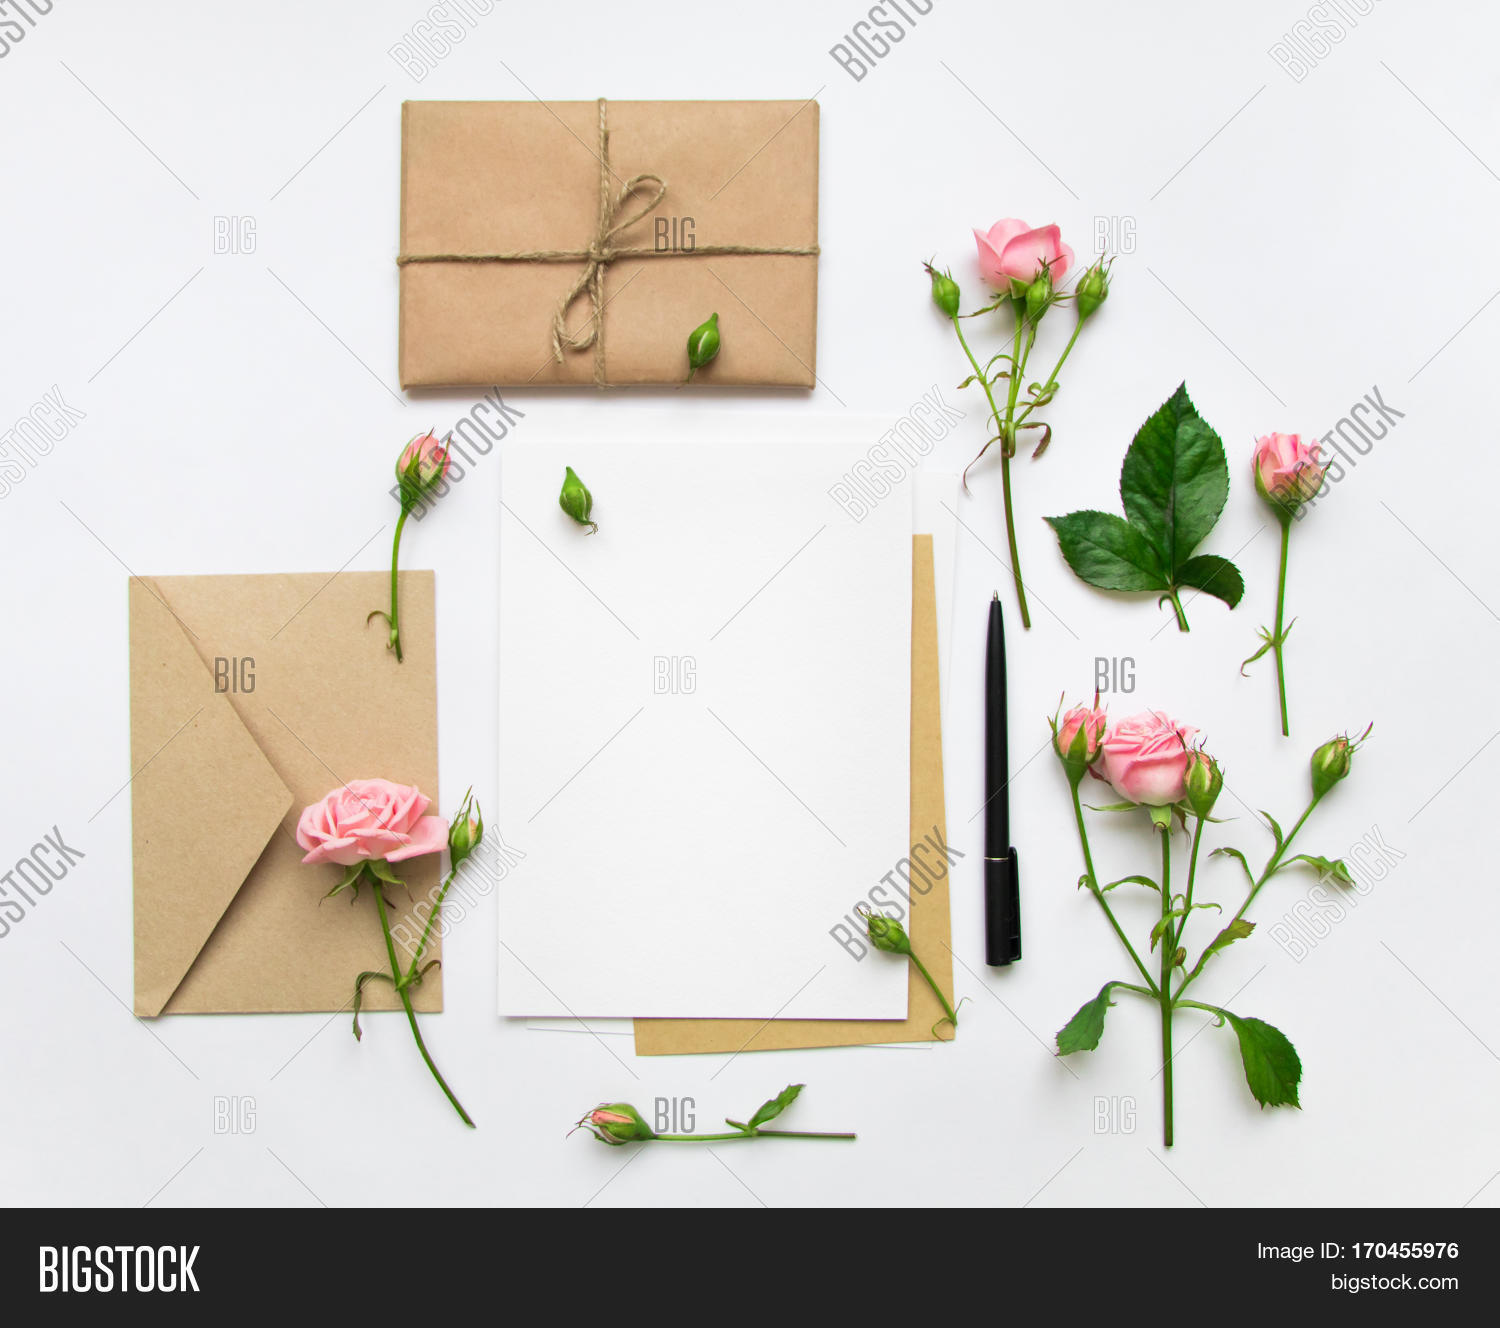 Letter Envelope Image & Photo (Free Trial) | Bigstock